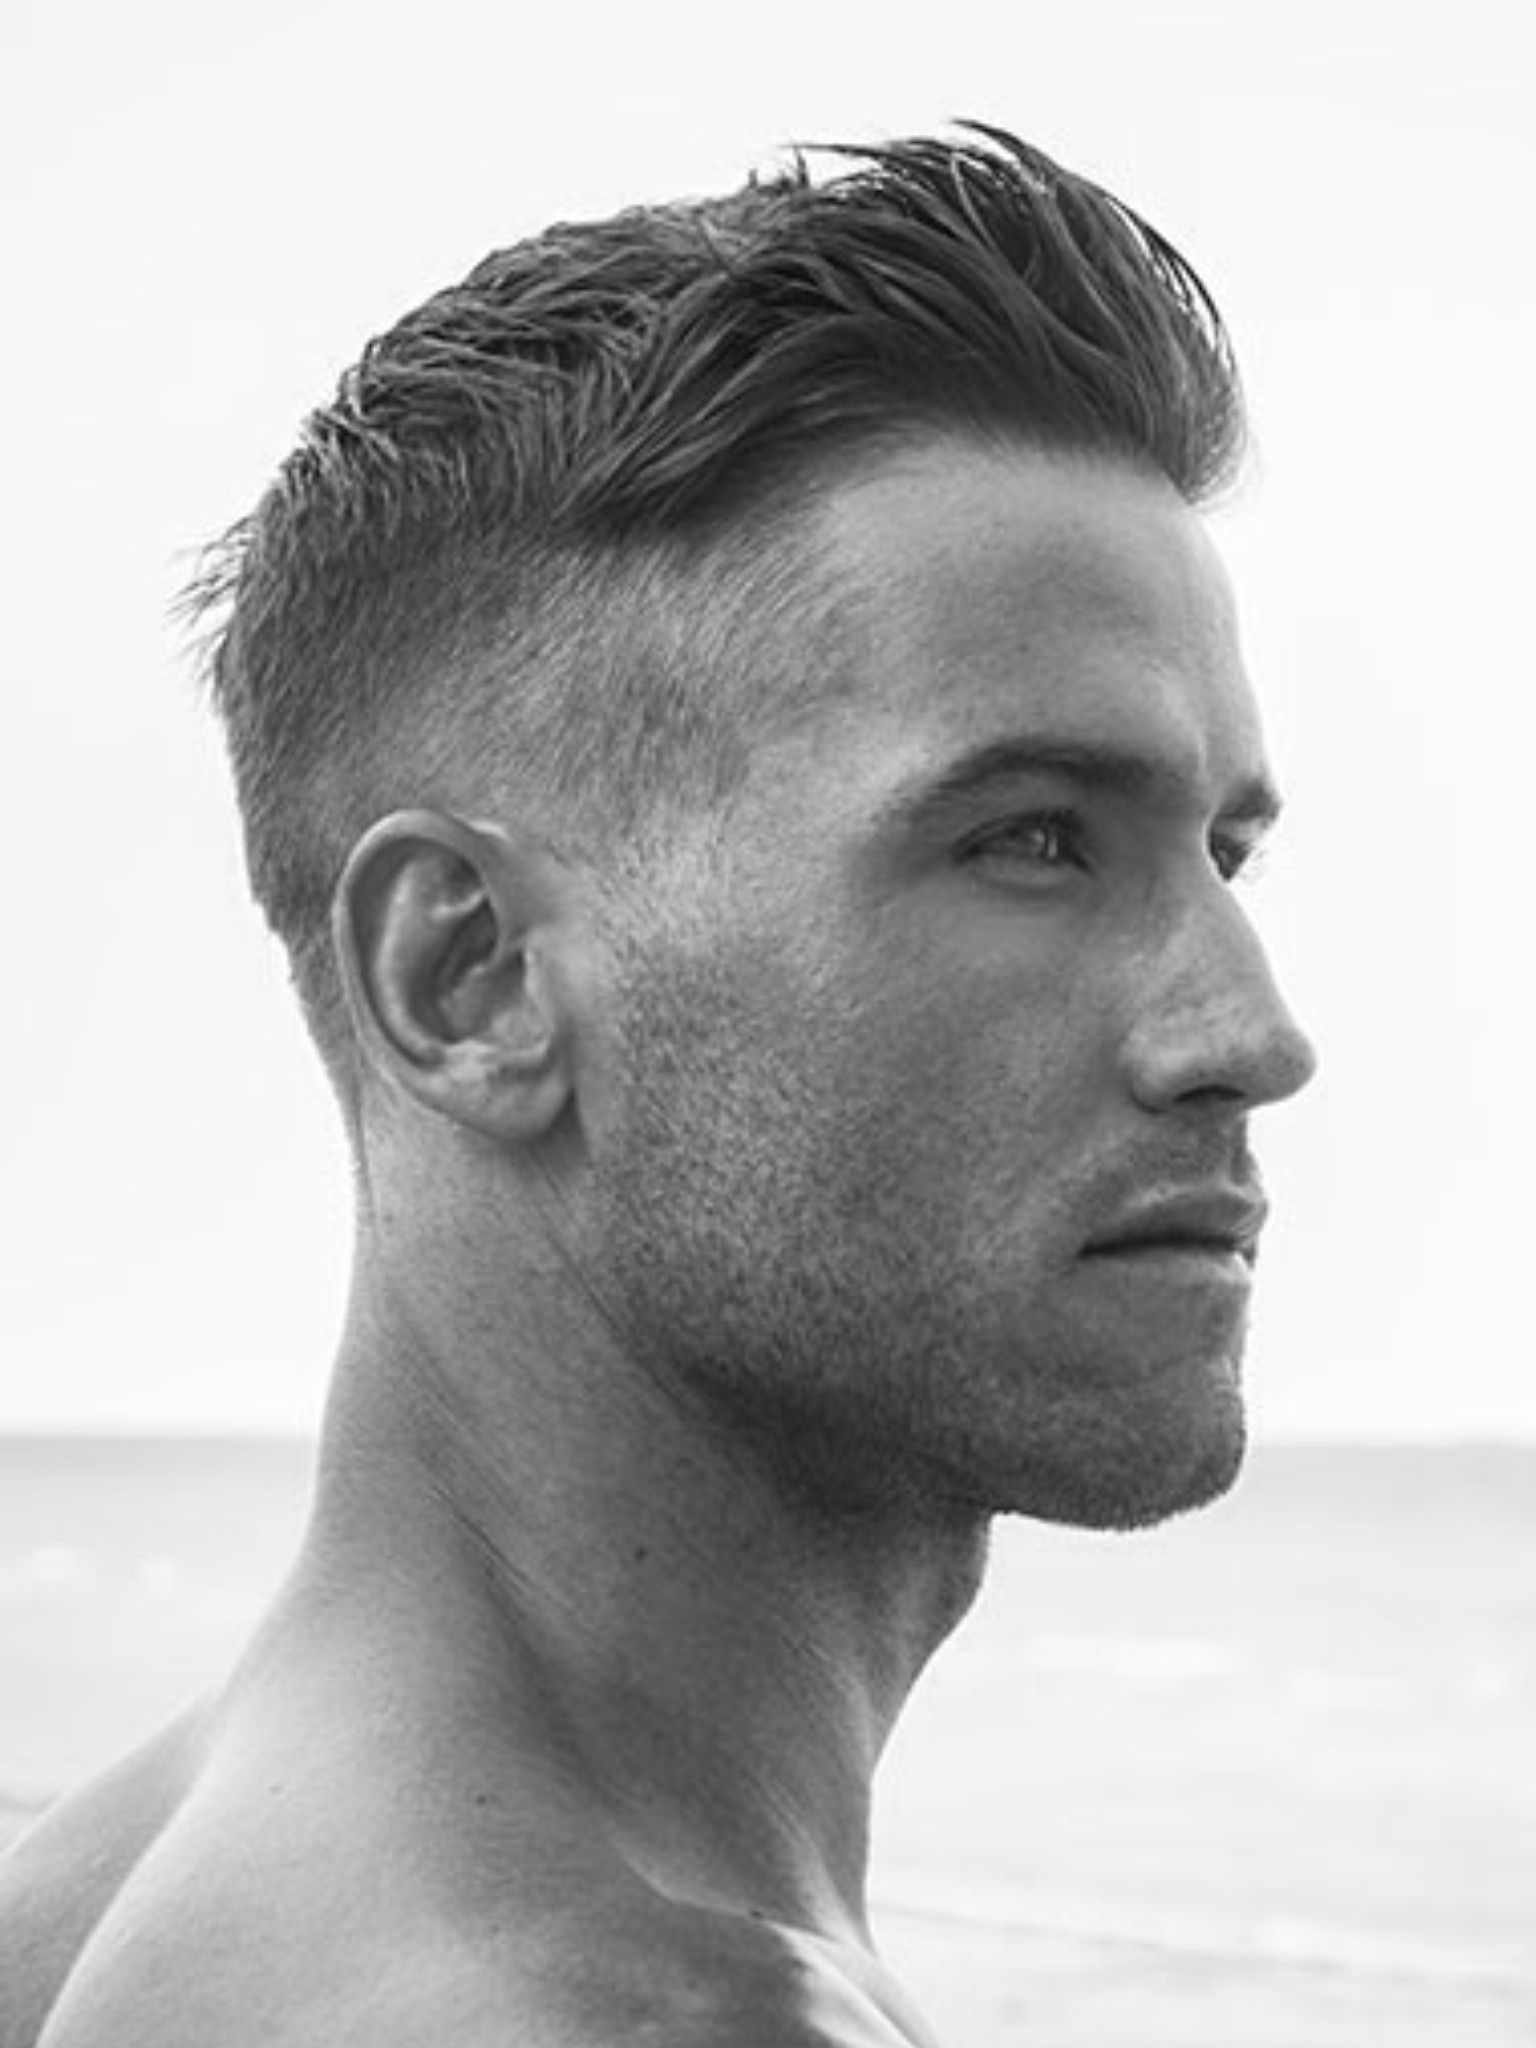 The Particular Perfect Hairstyles For White Men With Black Hair Names Mens Haircuts Short Mens Hairstyles Thick Hair Haircut For Thick Hair